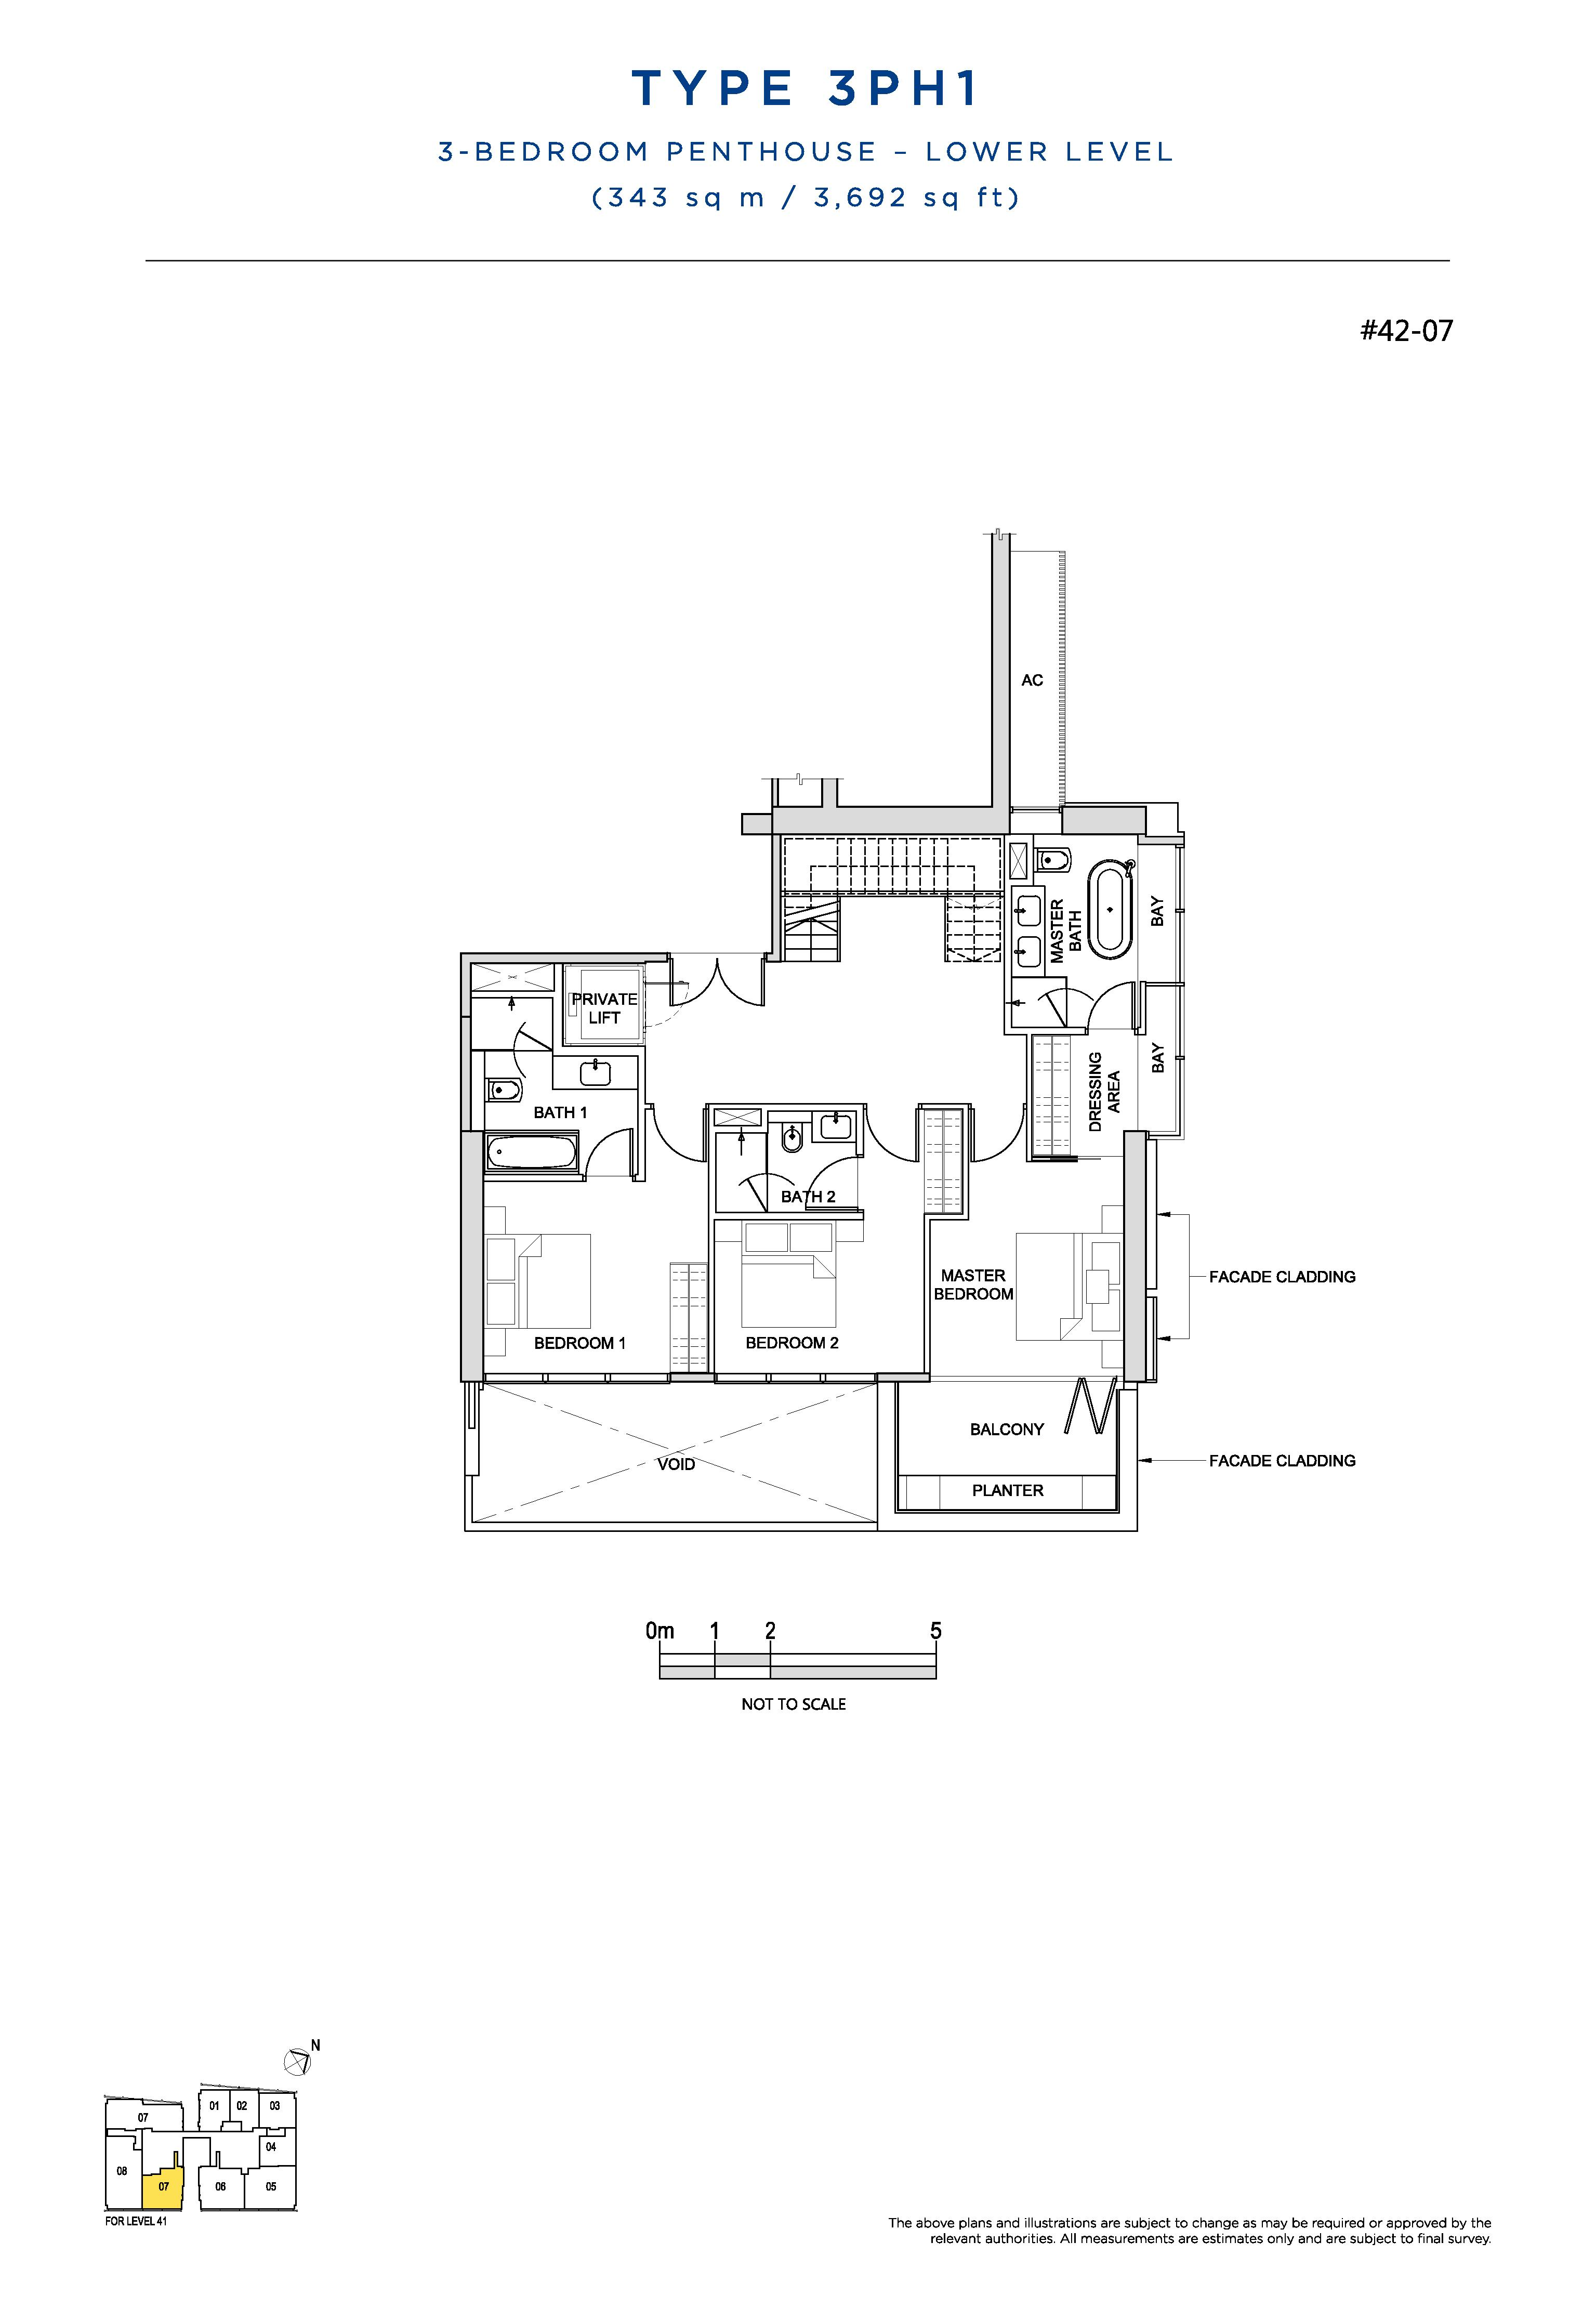 South Beach Residences 3 Bedroom Penthouse Floor Plans Type 3PH1(Lower Level)